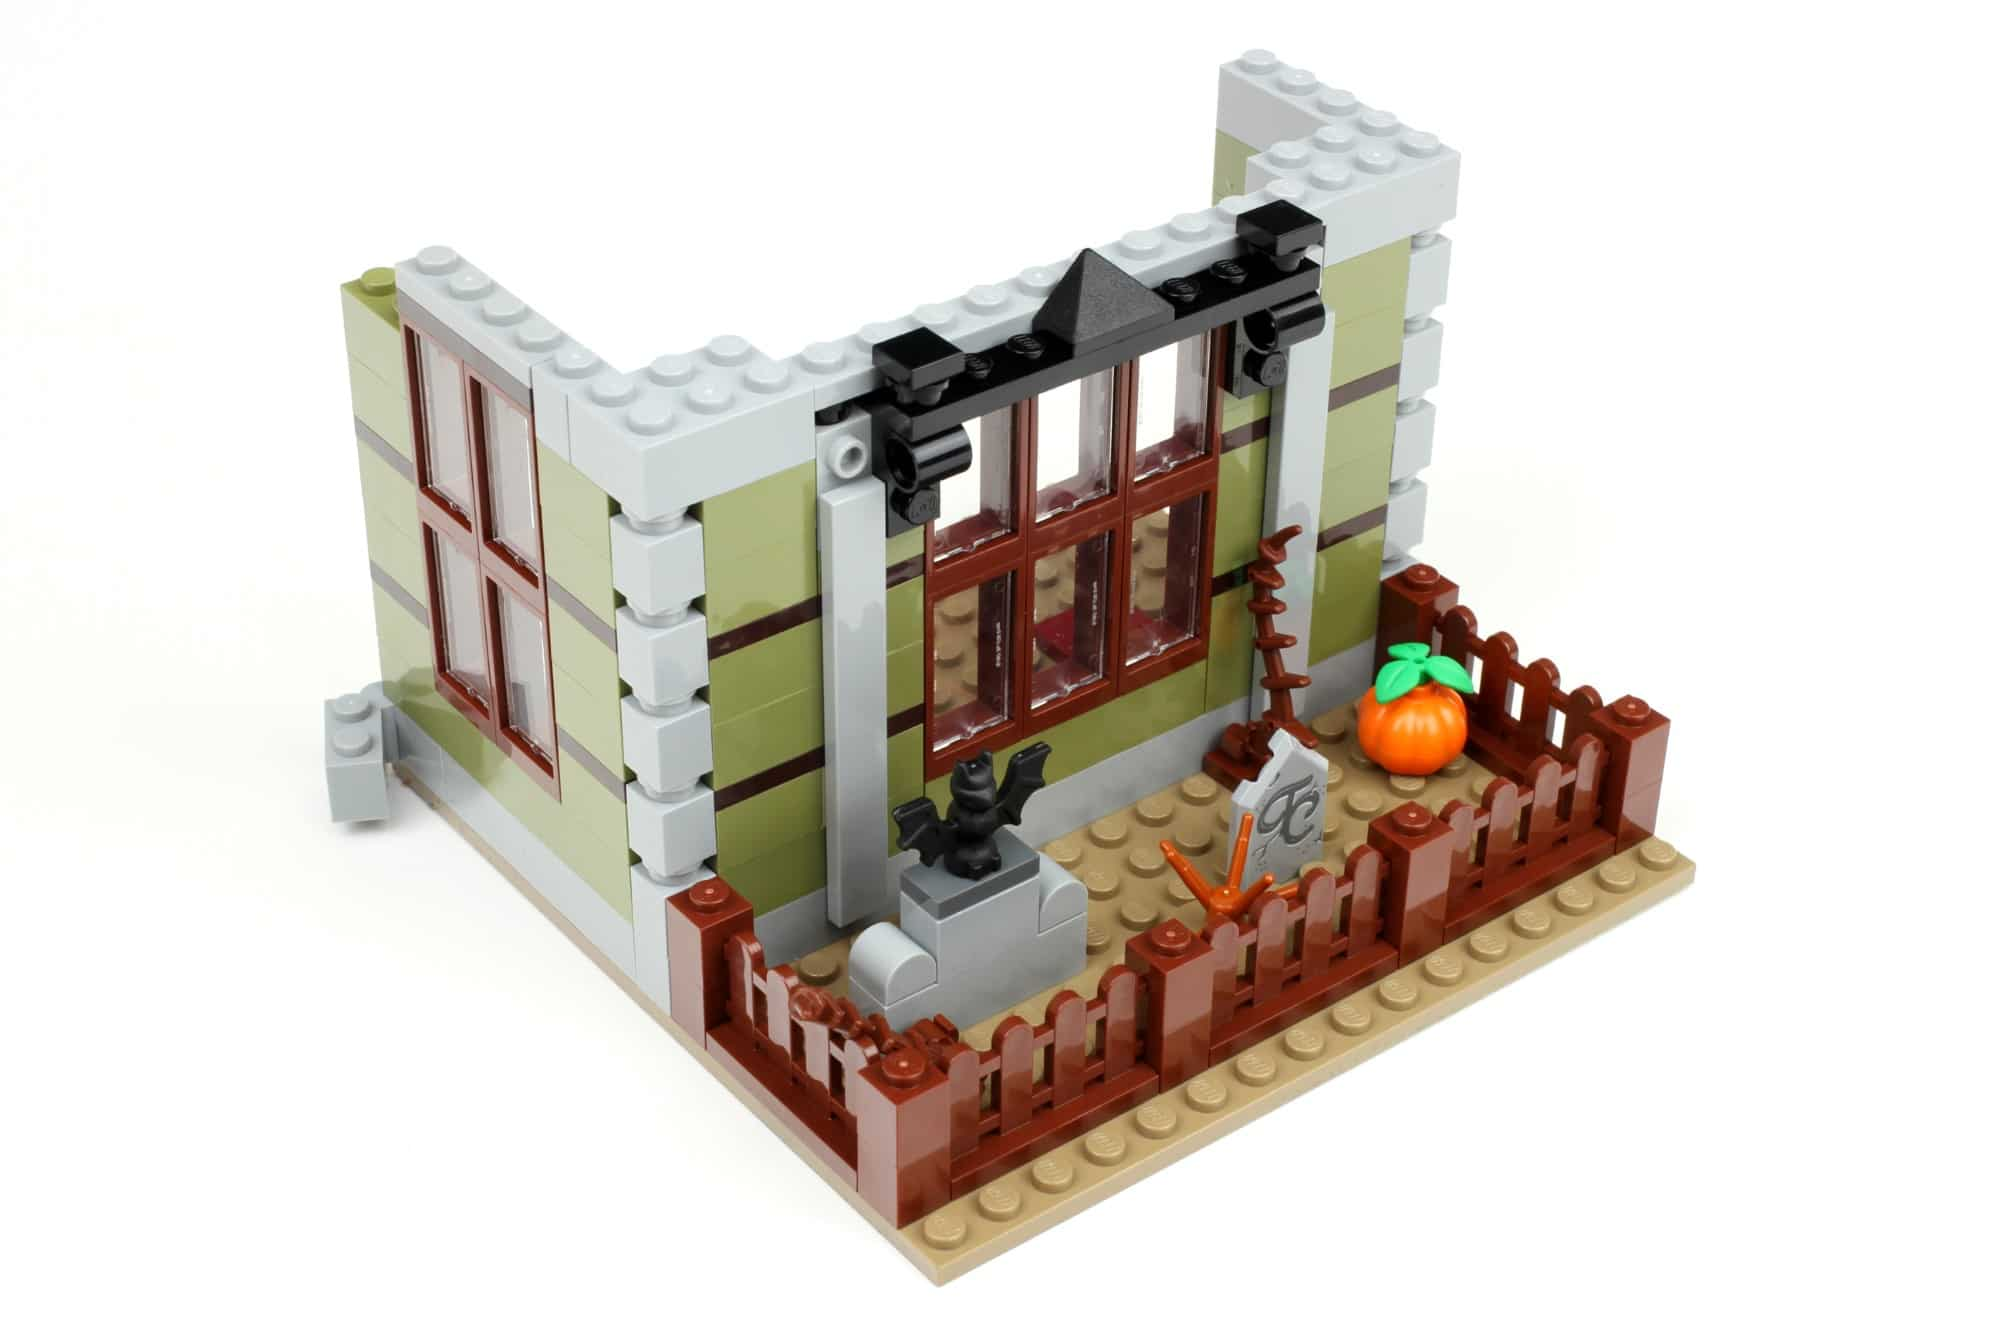 LEGO Fairground Collection 10273 Haunted House Aufbau Schritt 1